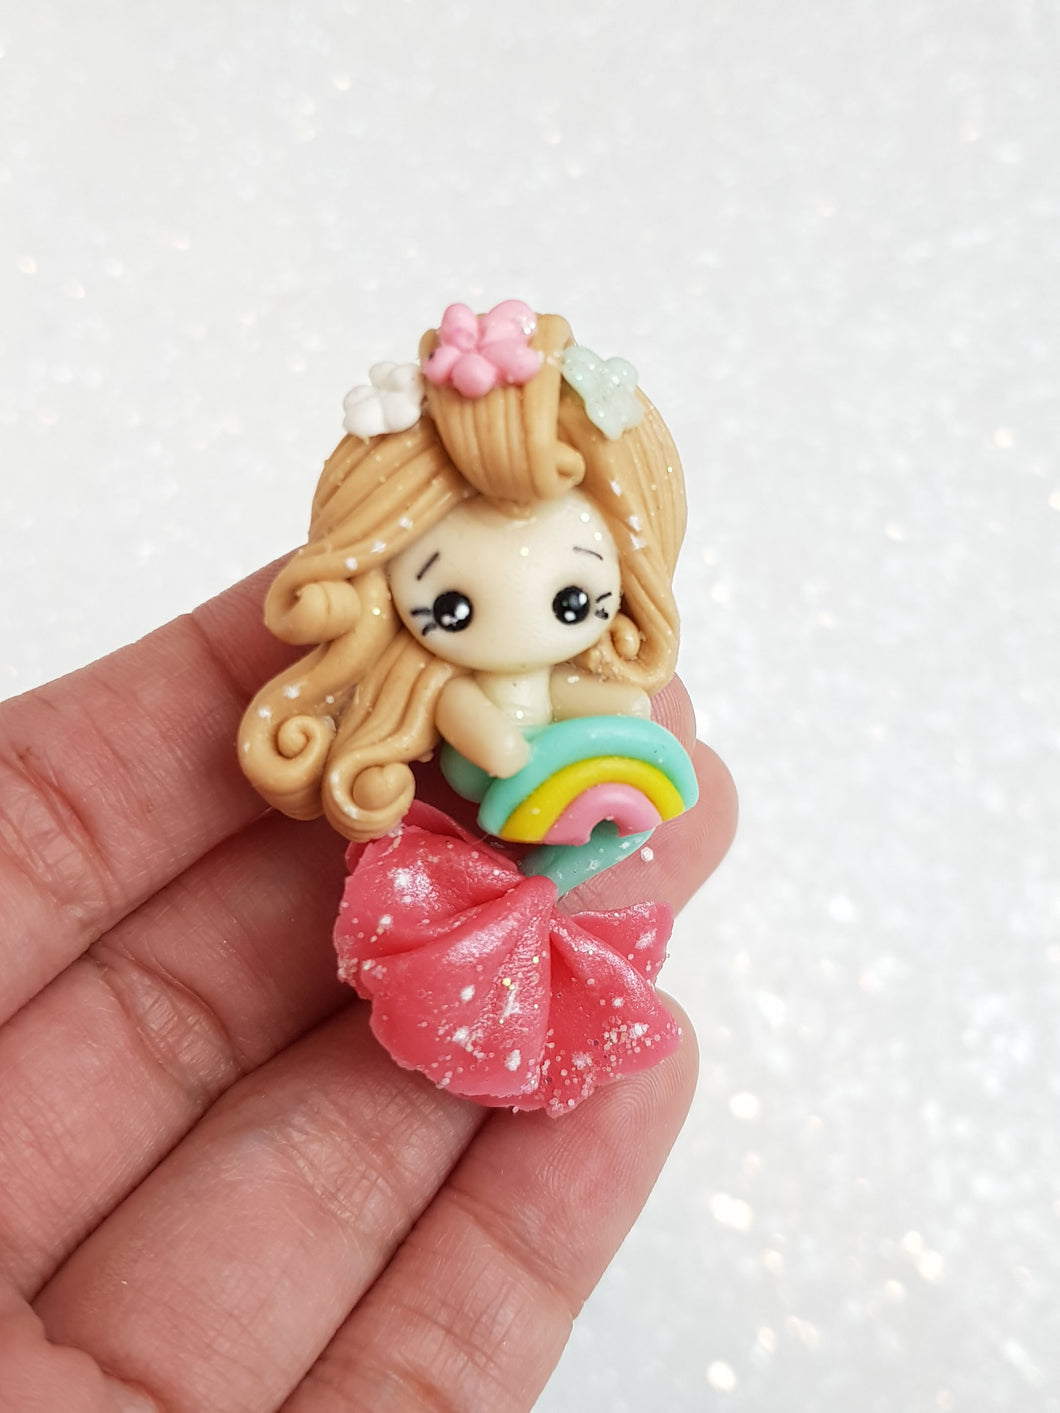 Clay Charm Embellishment - NEW RAINBOW MERMAID - Crafty Mood